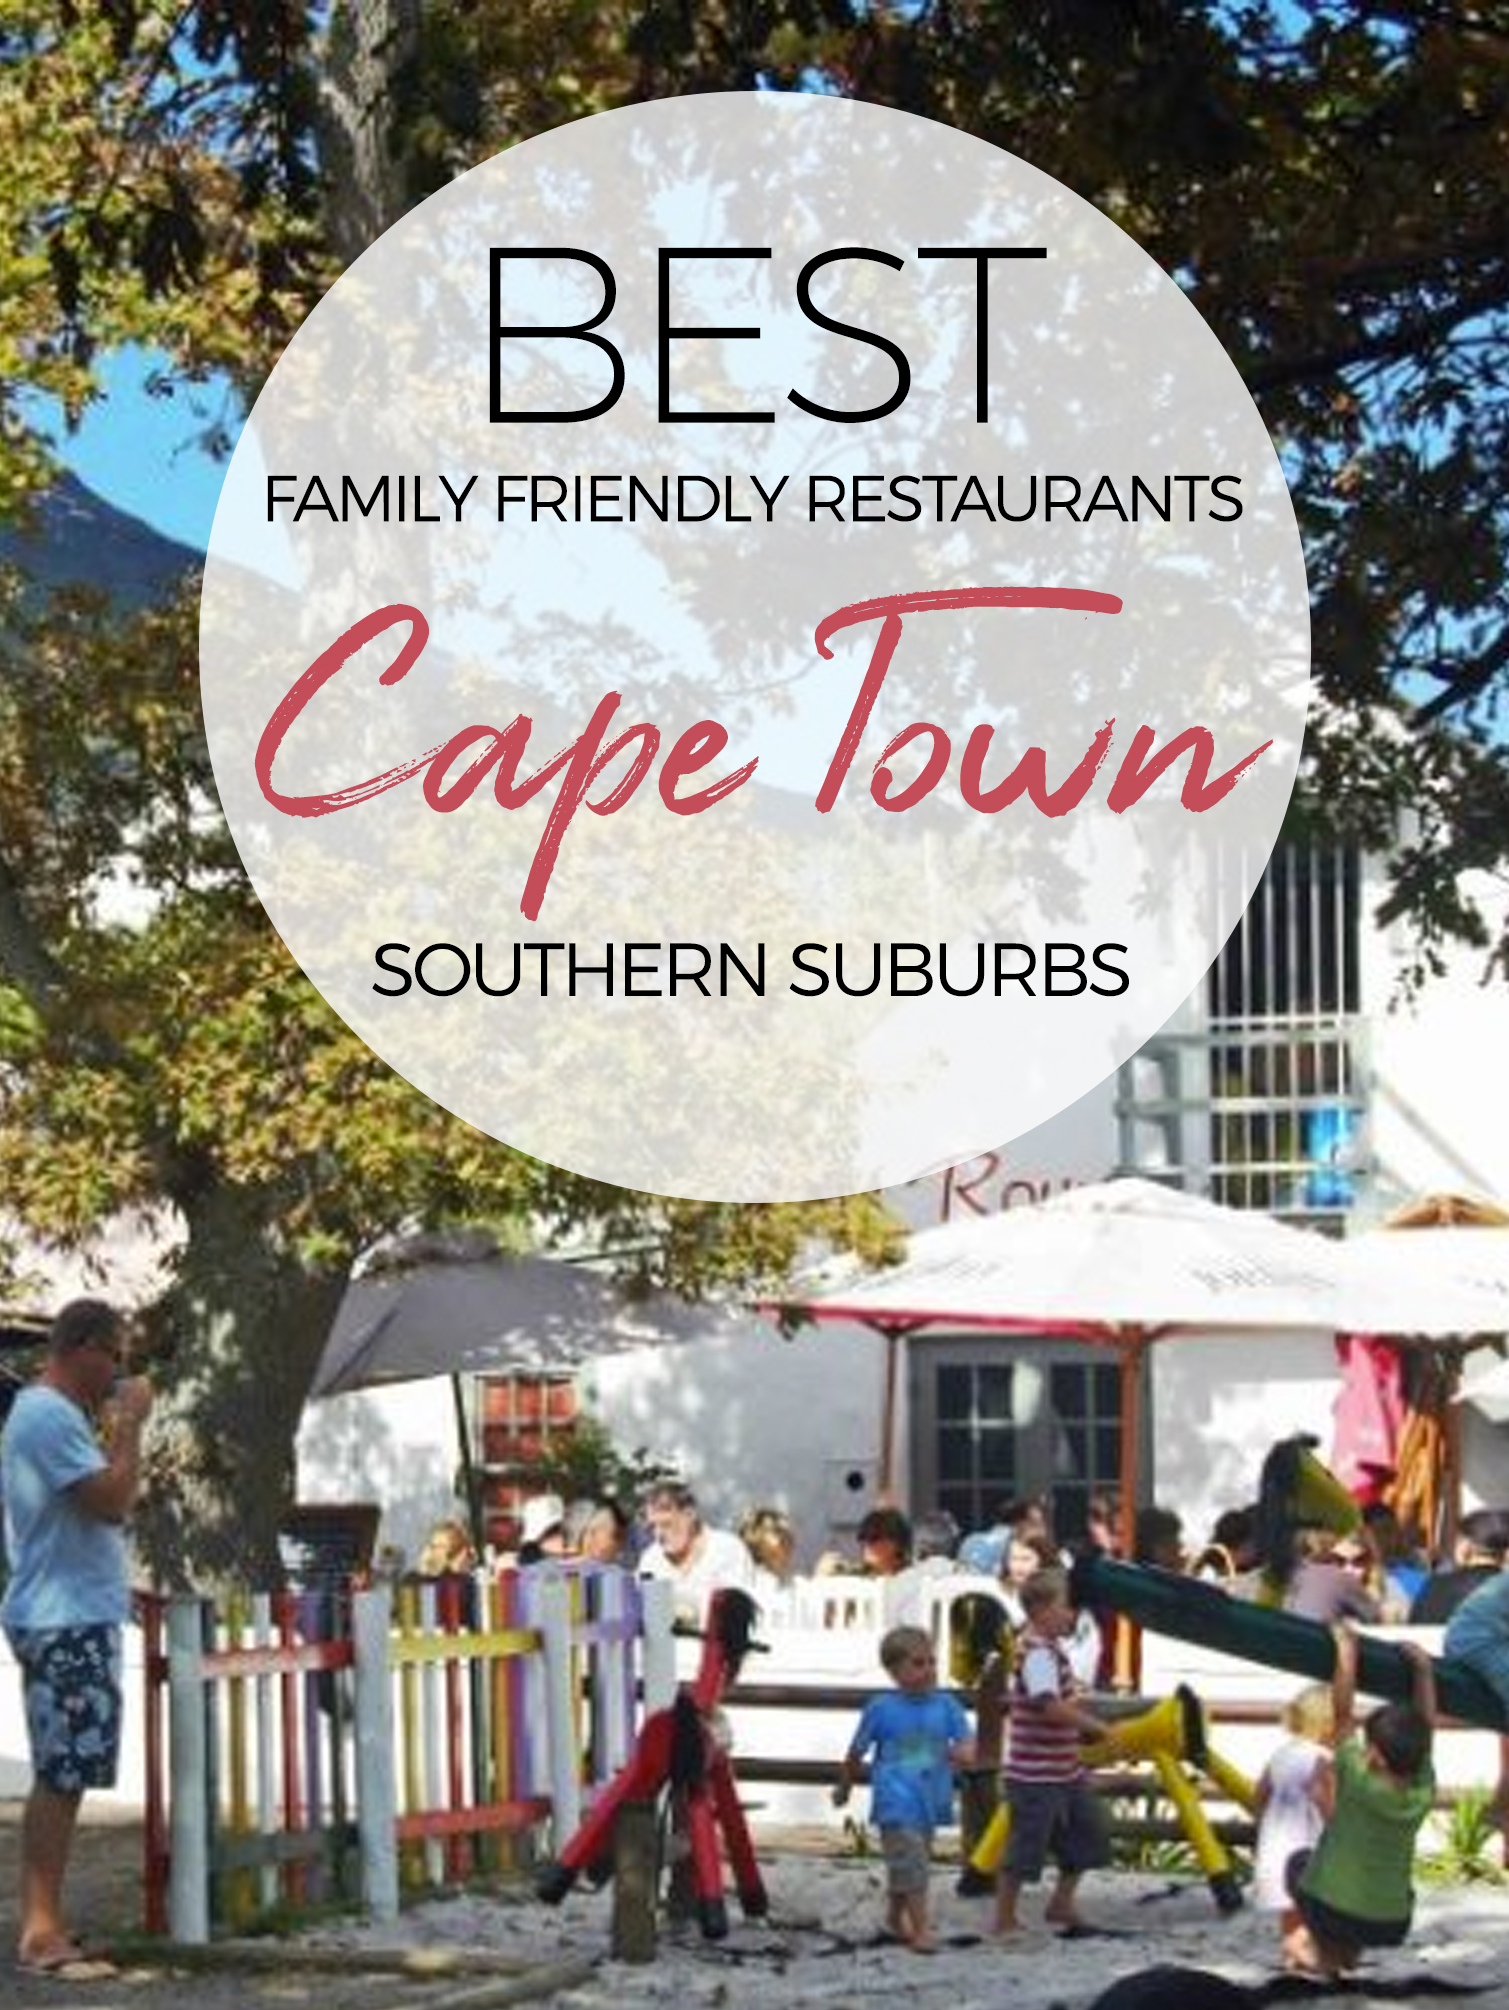 Here Are My Favourite Family Restaurants In The Southern Suburbs And South Peninsula Of Cape Town No Particular Order